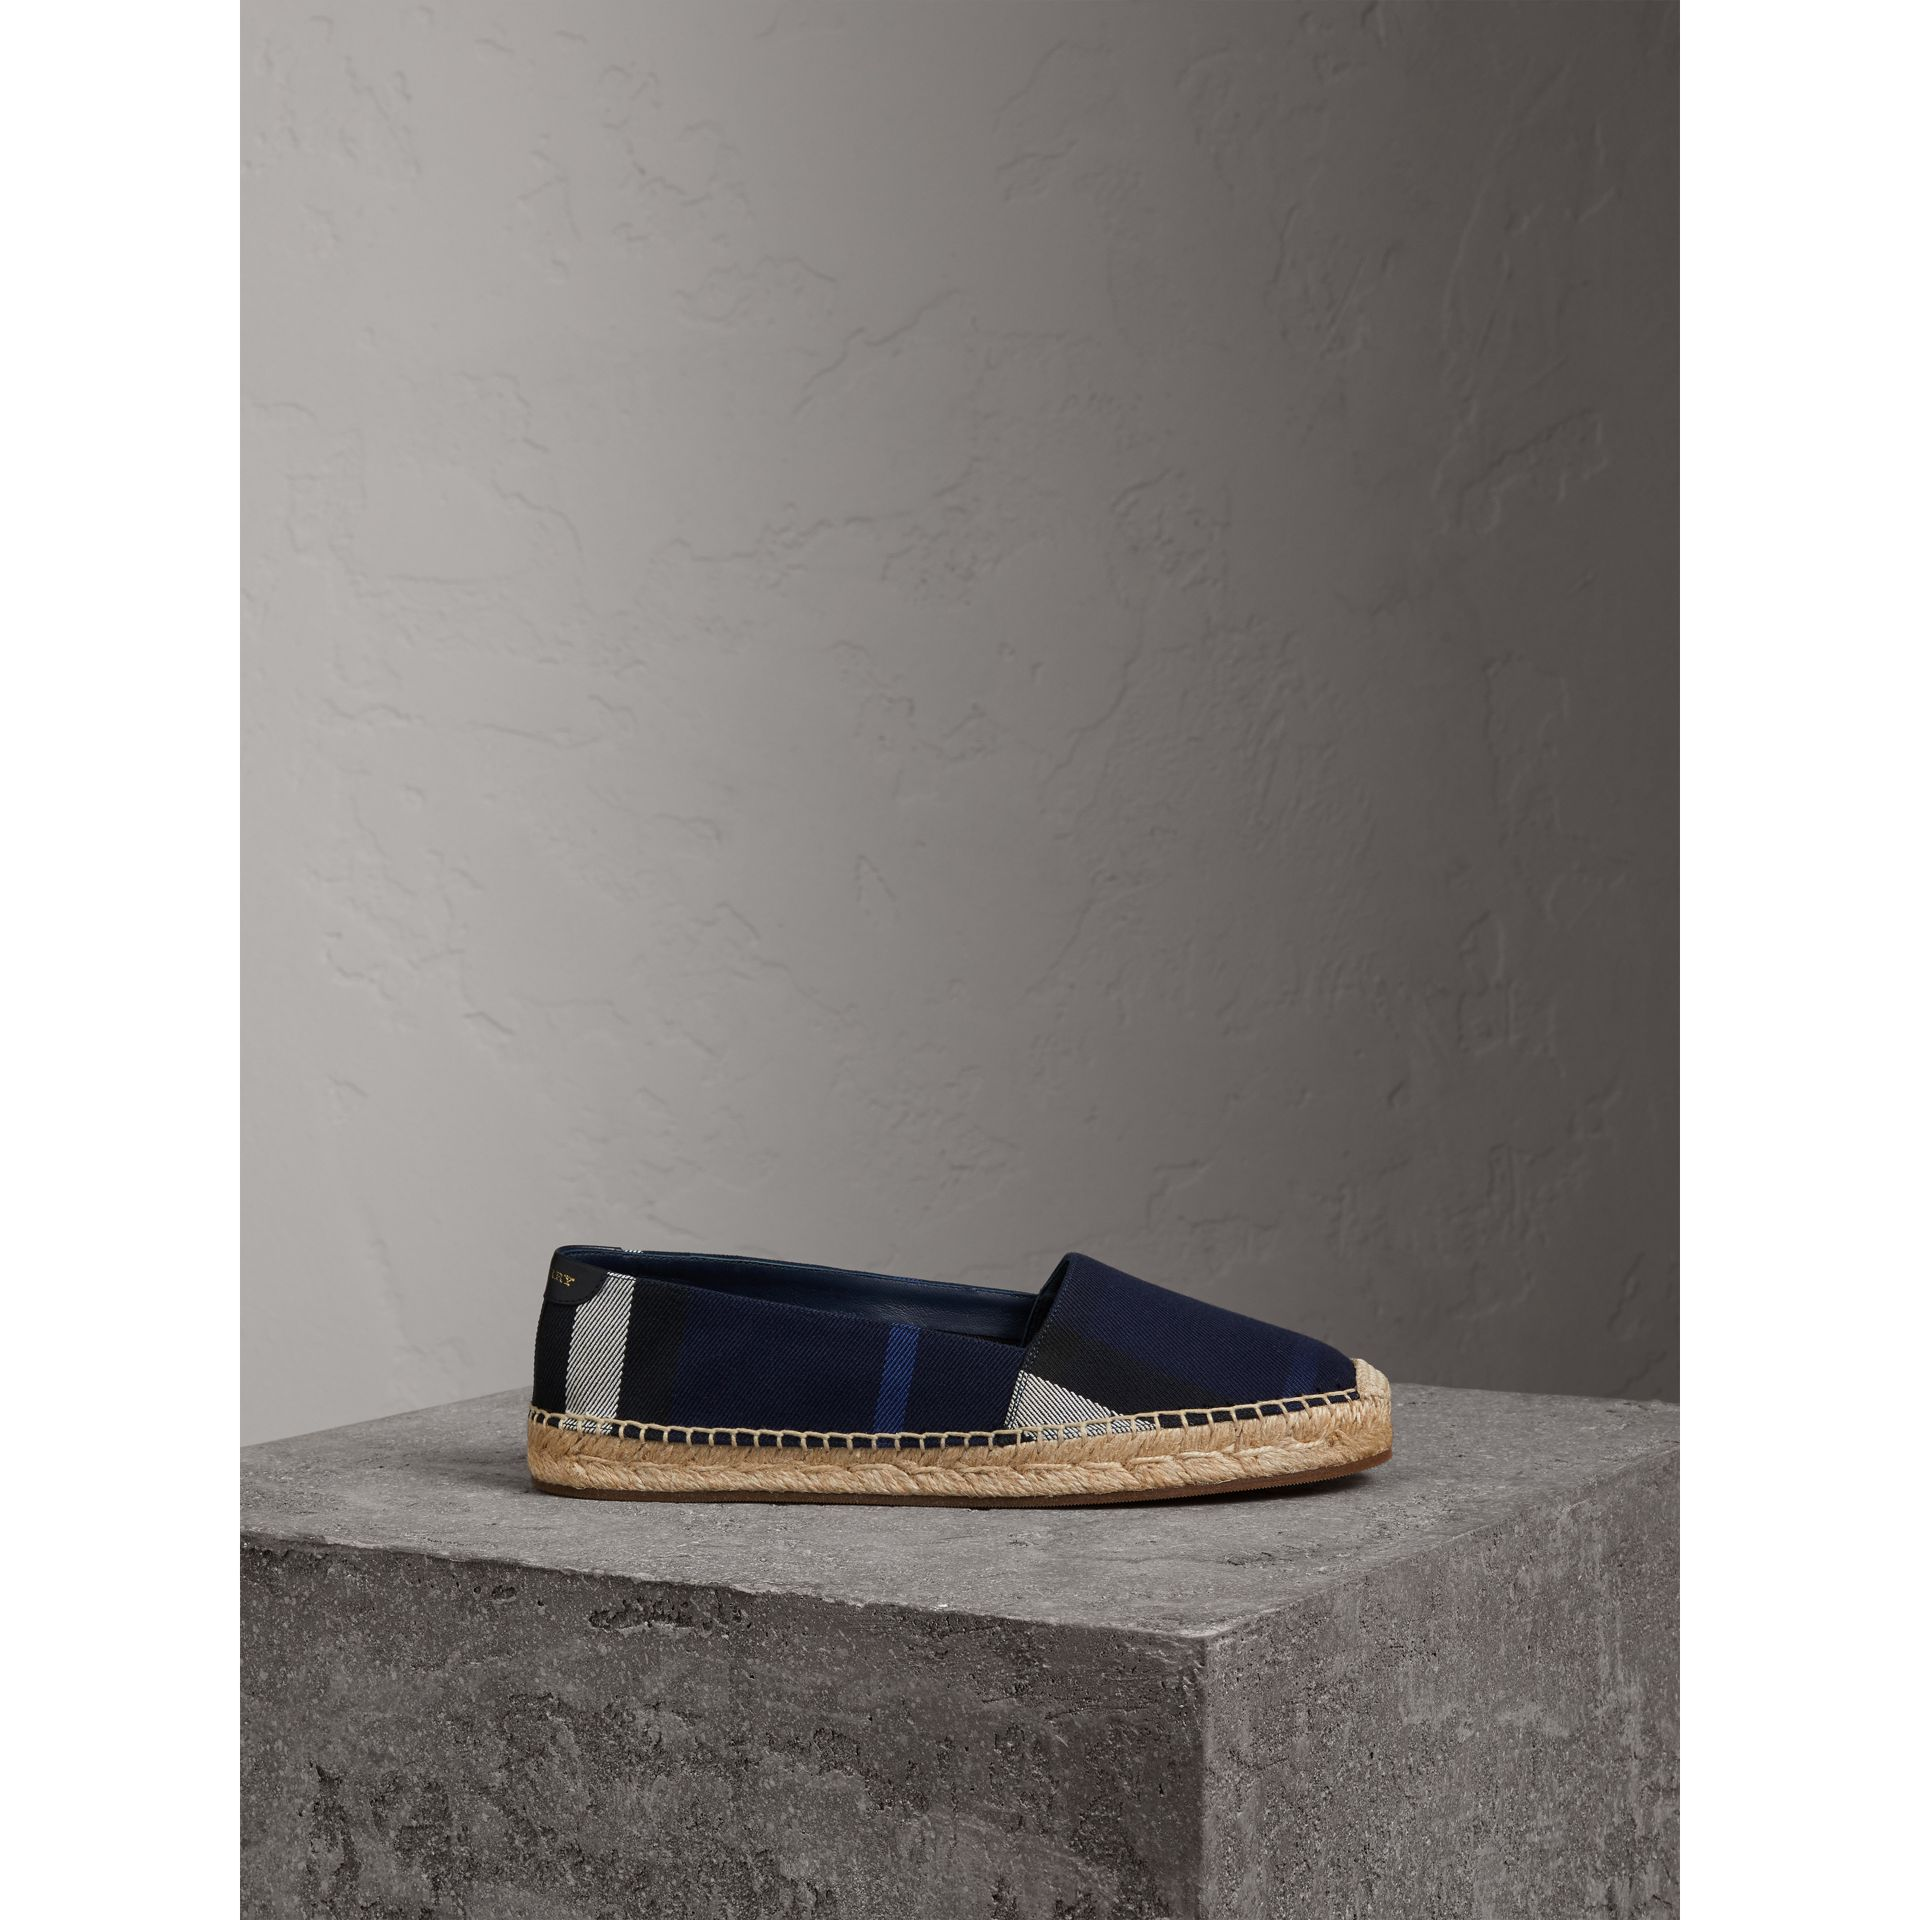 Check Cotton Espadrilles in Indigo Blue - Women | Burberry - gallery image 5